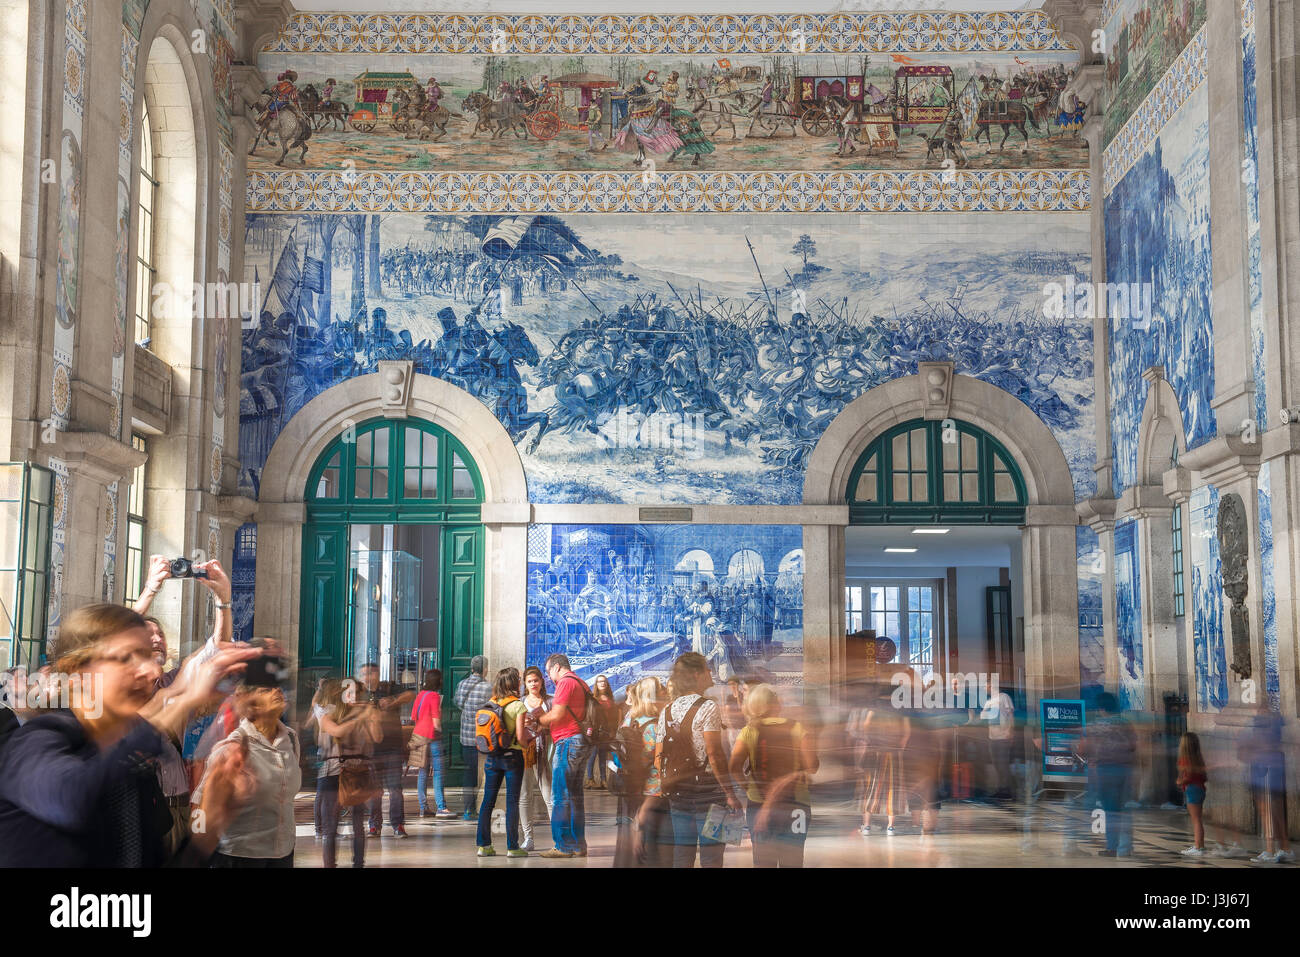 Porto Portugal azulejos, the entrance hall of the Sao Bento train station richly decorated with blue azulejo tiles - Stock Image